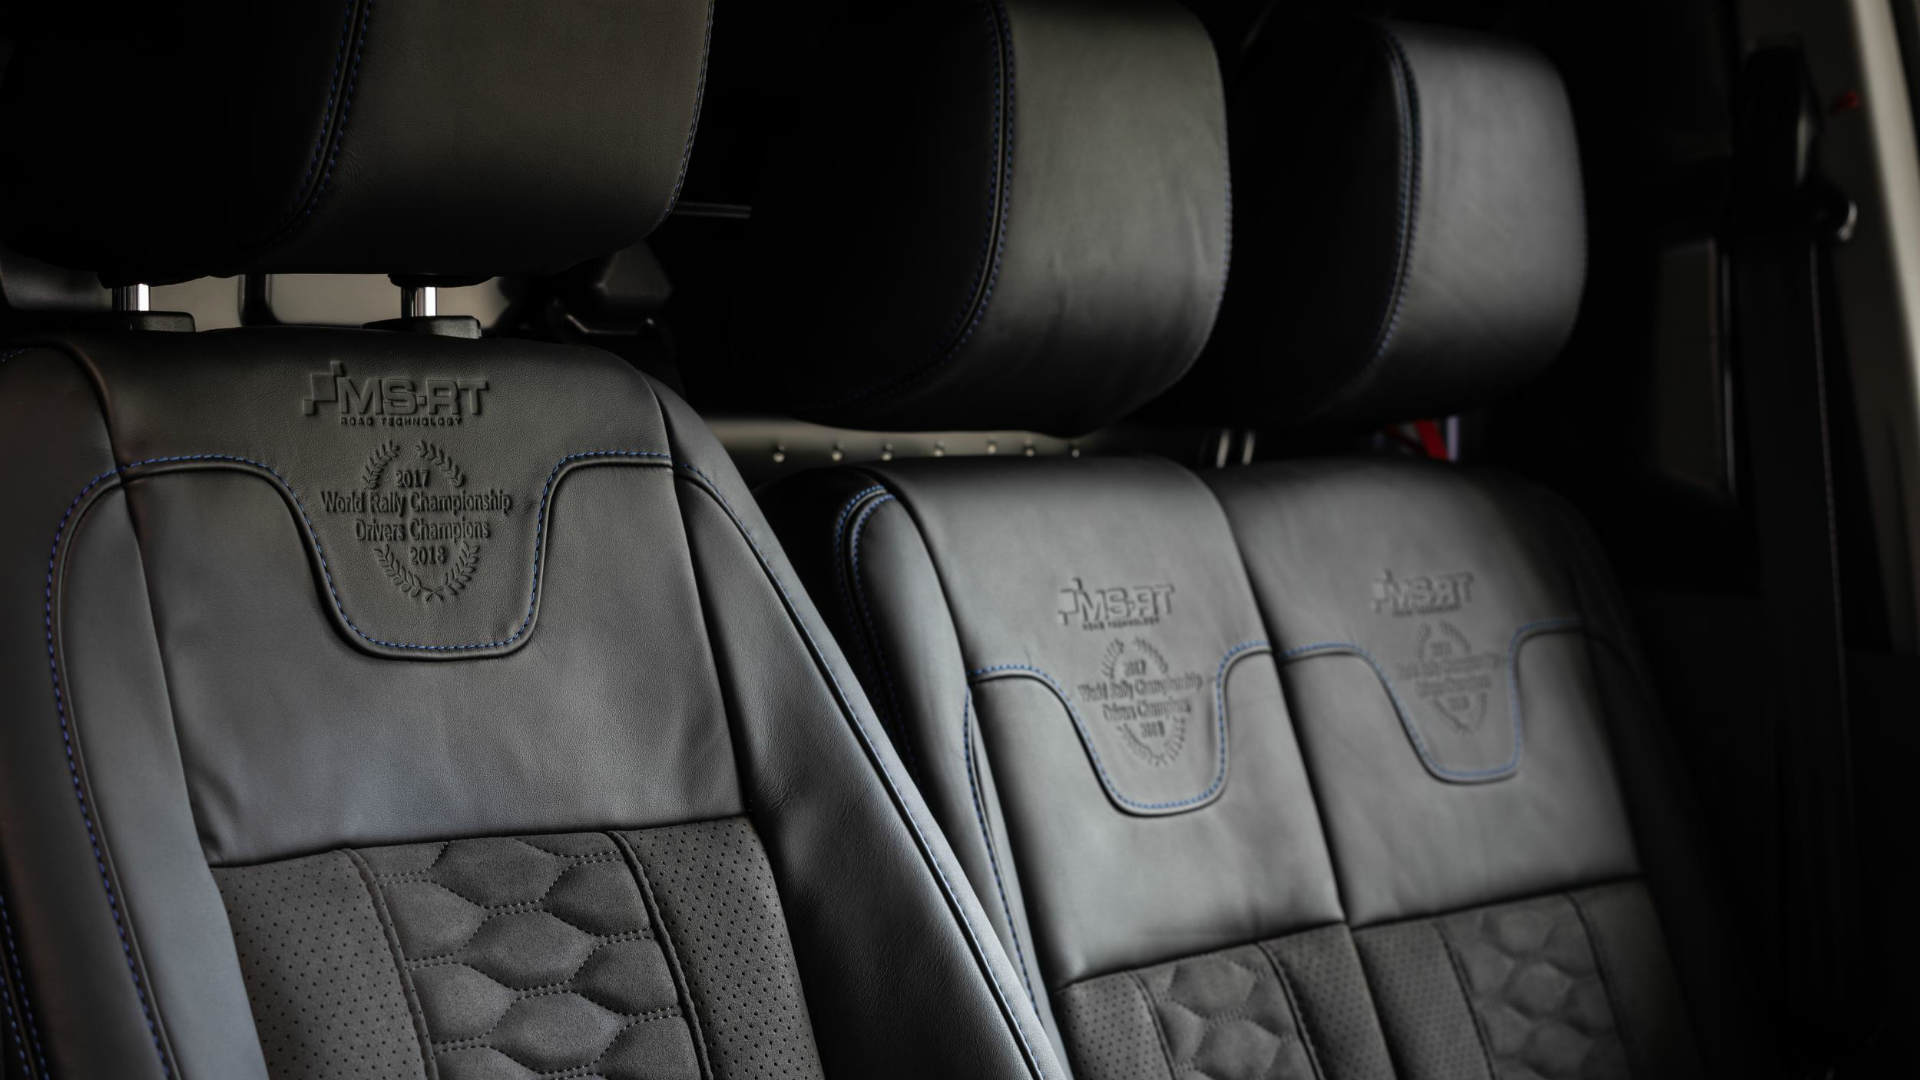 MS-RT Ford Transit Connect leather seats